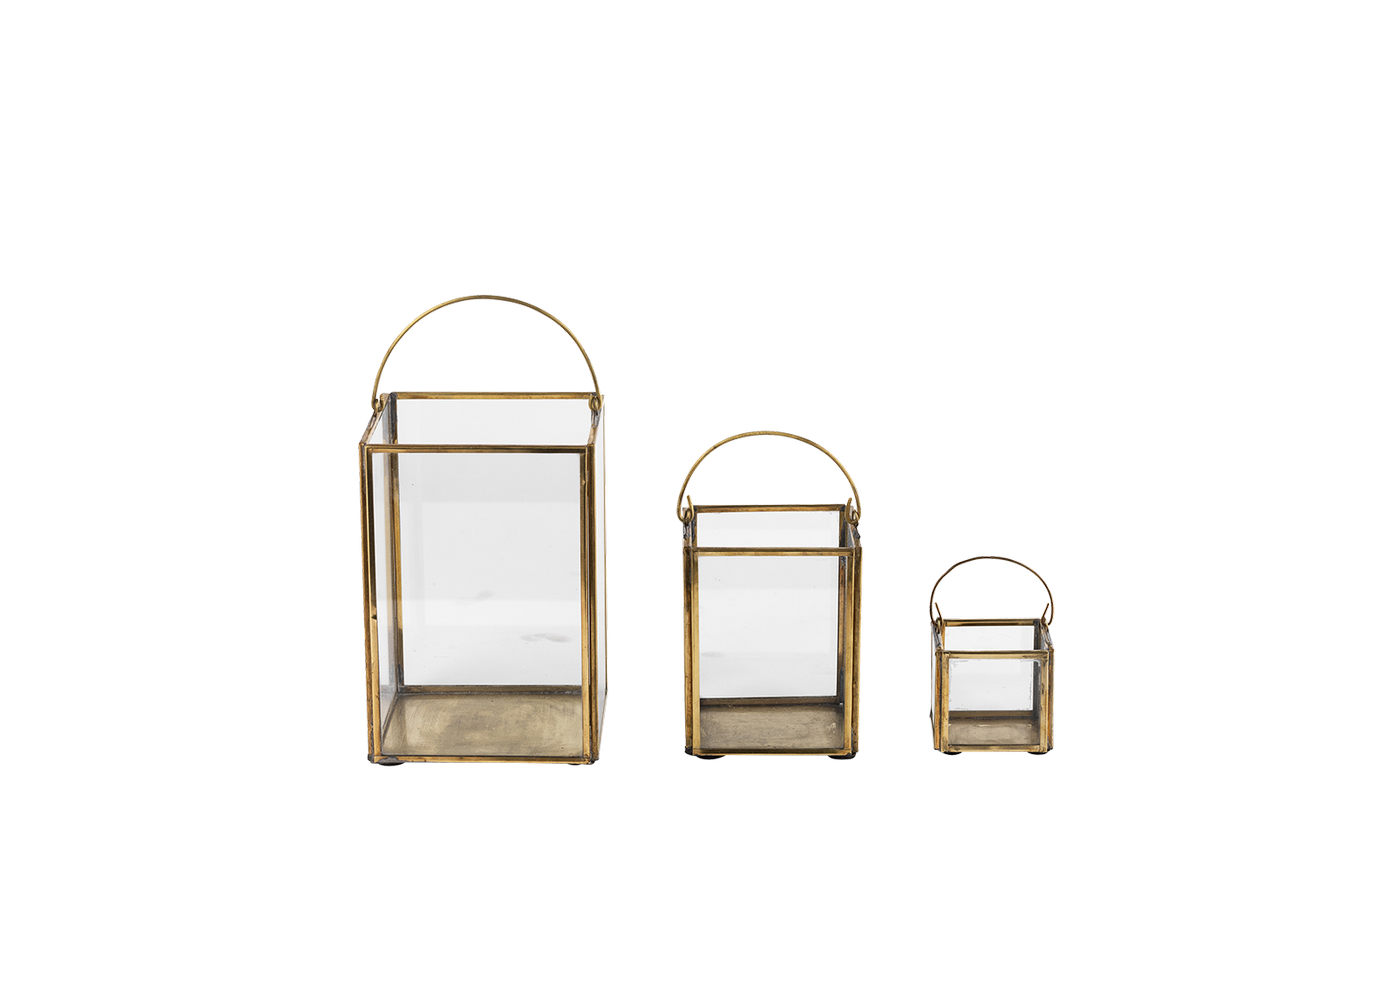 Z Gallerie Mirrored Coffee Table Images Z Gallerie  : emhome Nkuku decor lantern home antique brass glass candle holder BL32 WB from zenlaser.co size 1400 x 1008 png 265kB